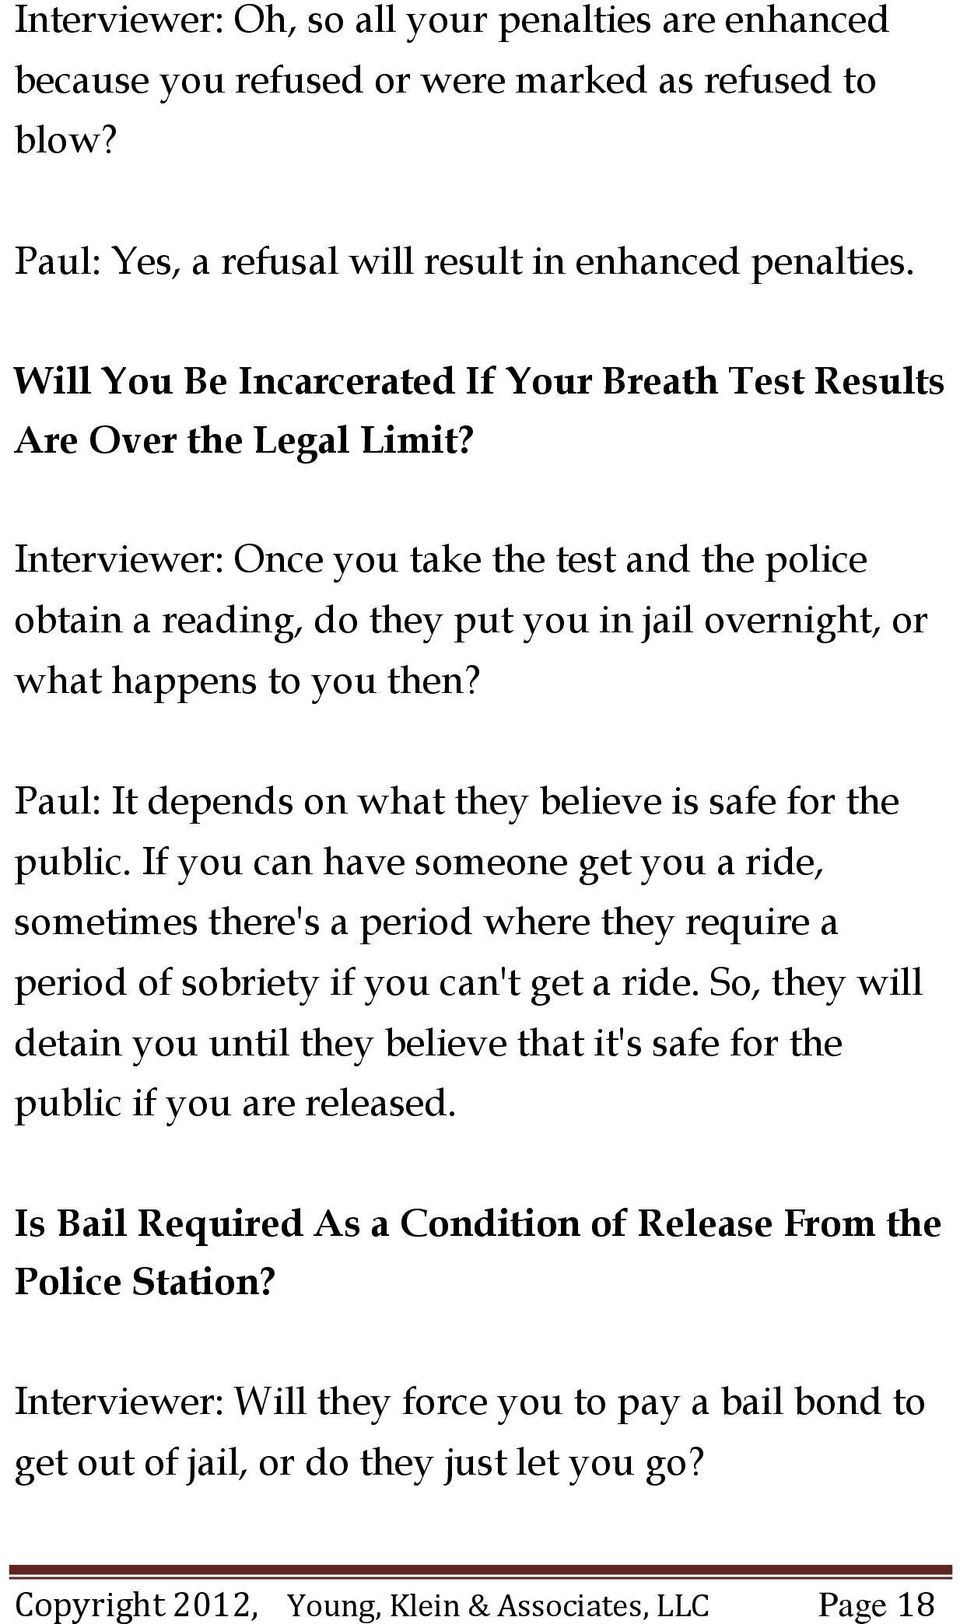 Interviewer: Once you take the test and the police obtain a reading, do they put you in jail overnight, or what happens to you then? Paul: It depends on what they believe is safe for the public.